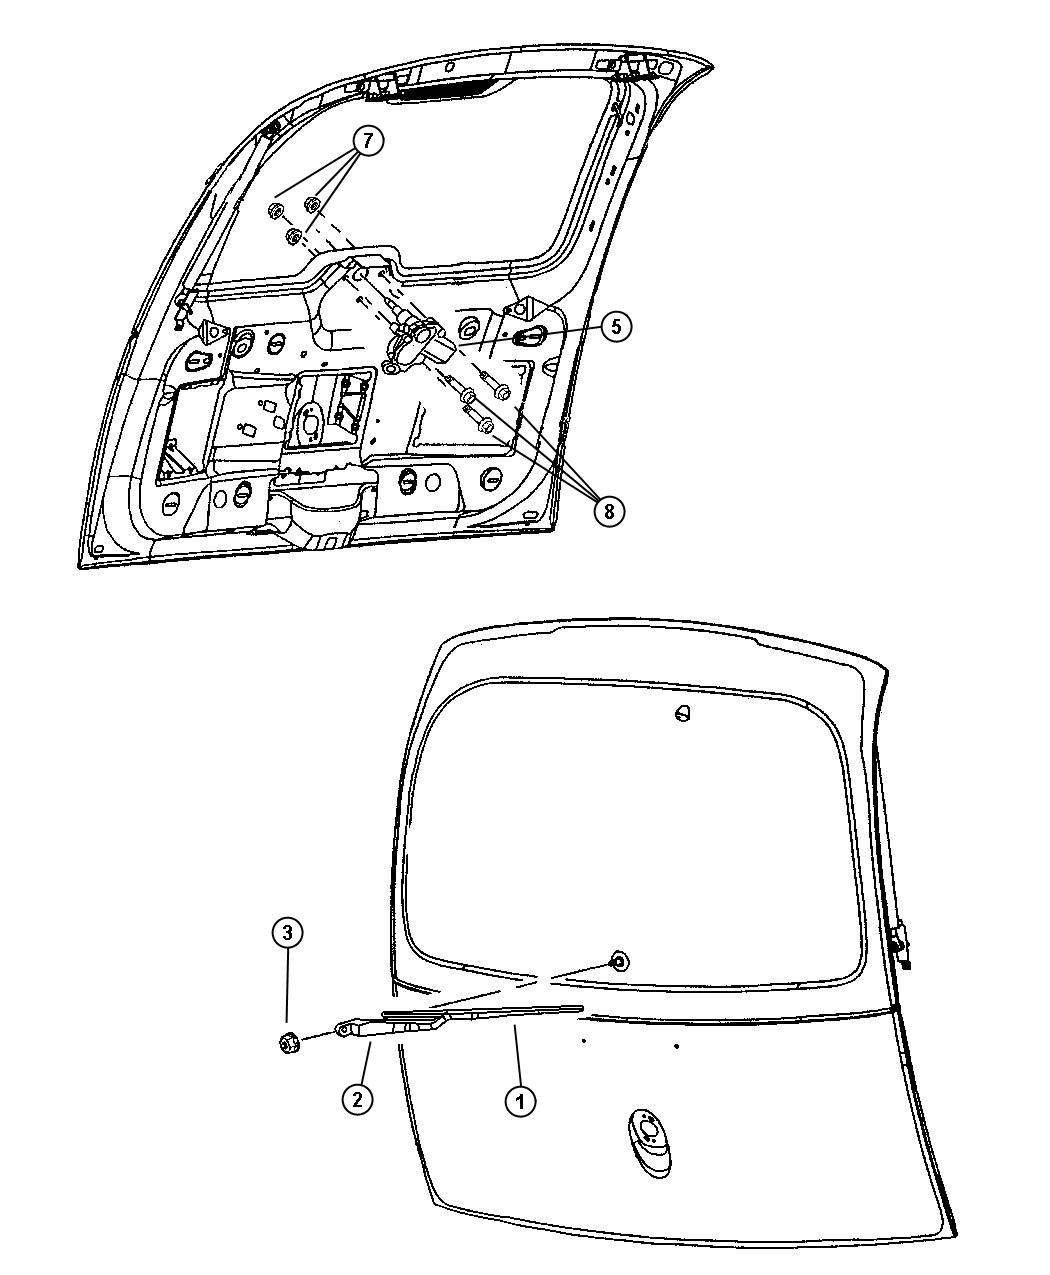 Rear Wiper and Washer. Diagram